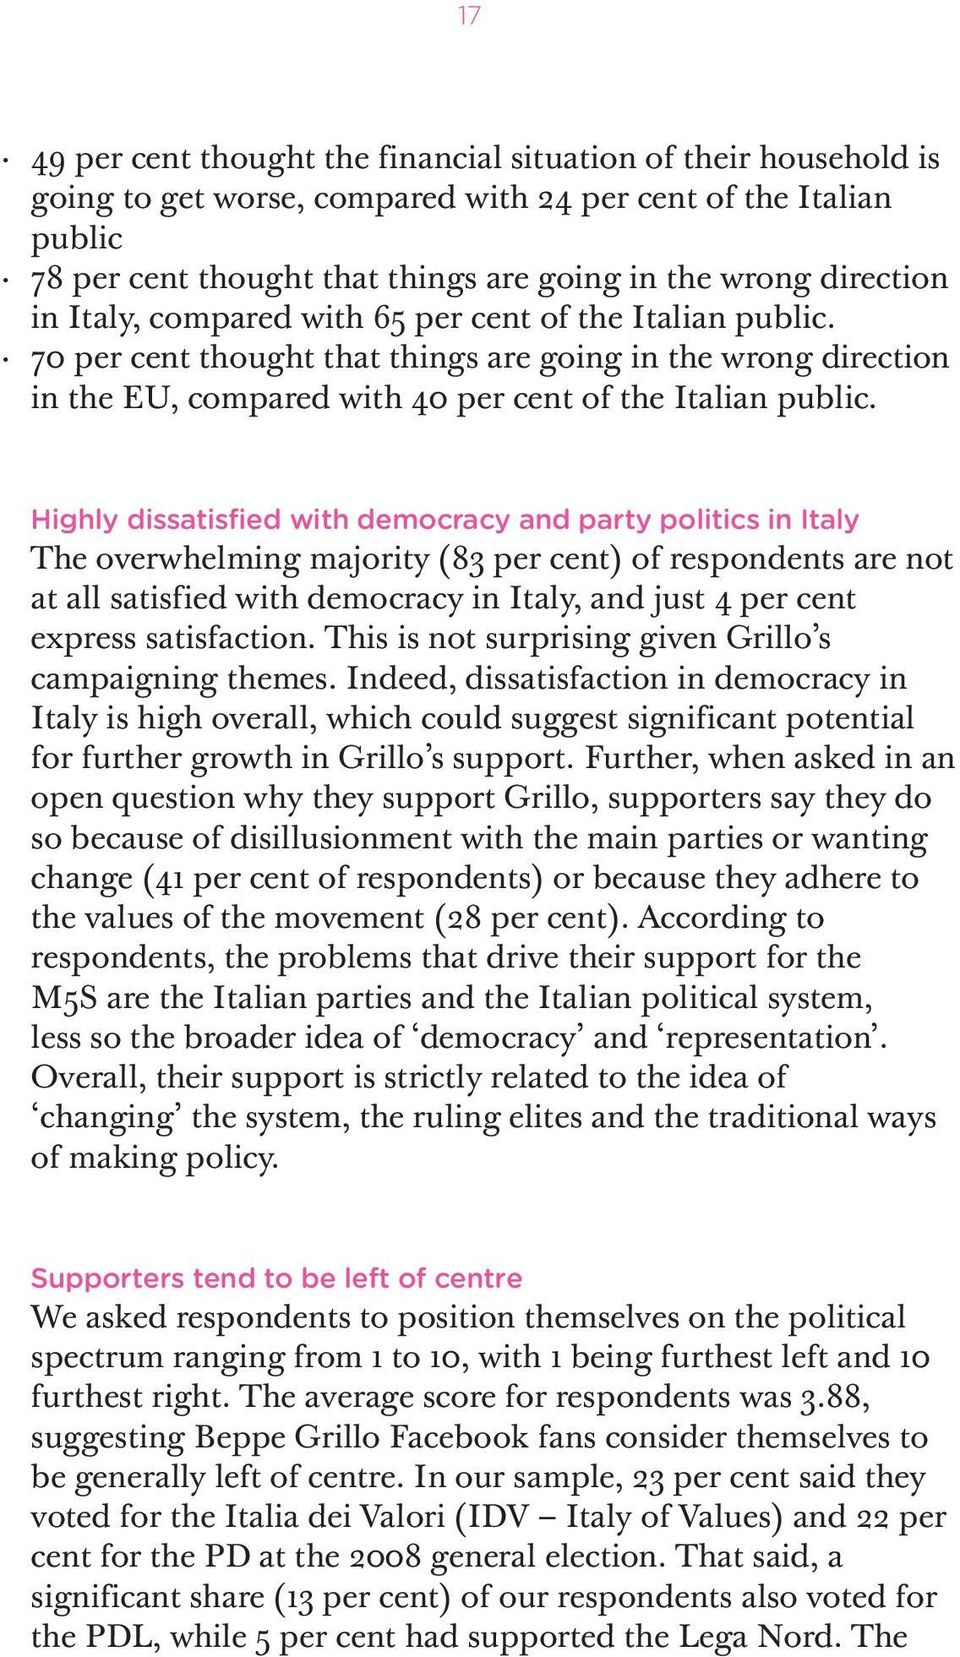 Highly dissatisfied with democracy and party politics in Italy The overwhelming majority (83 per cent) of respondents are not at all satisfied with democracy in Italy, and just 4 per cent express